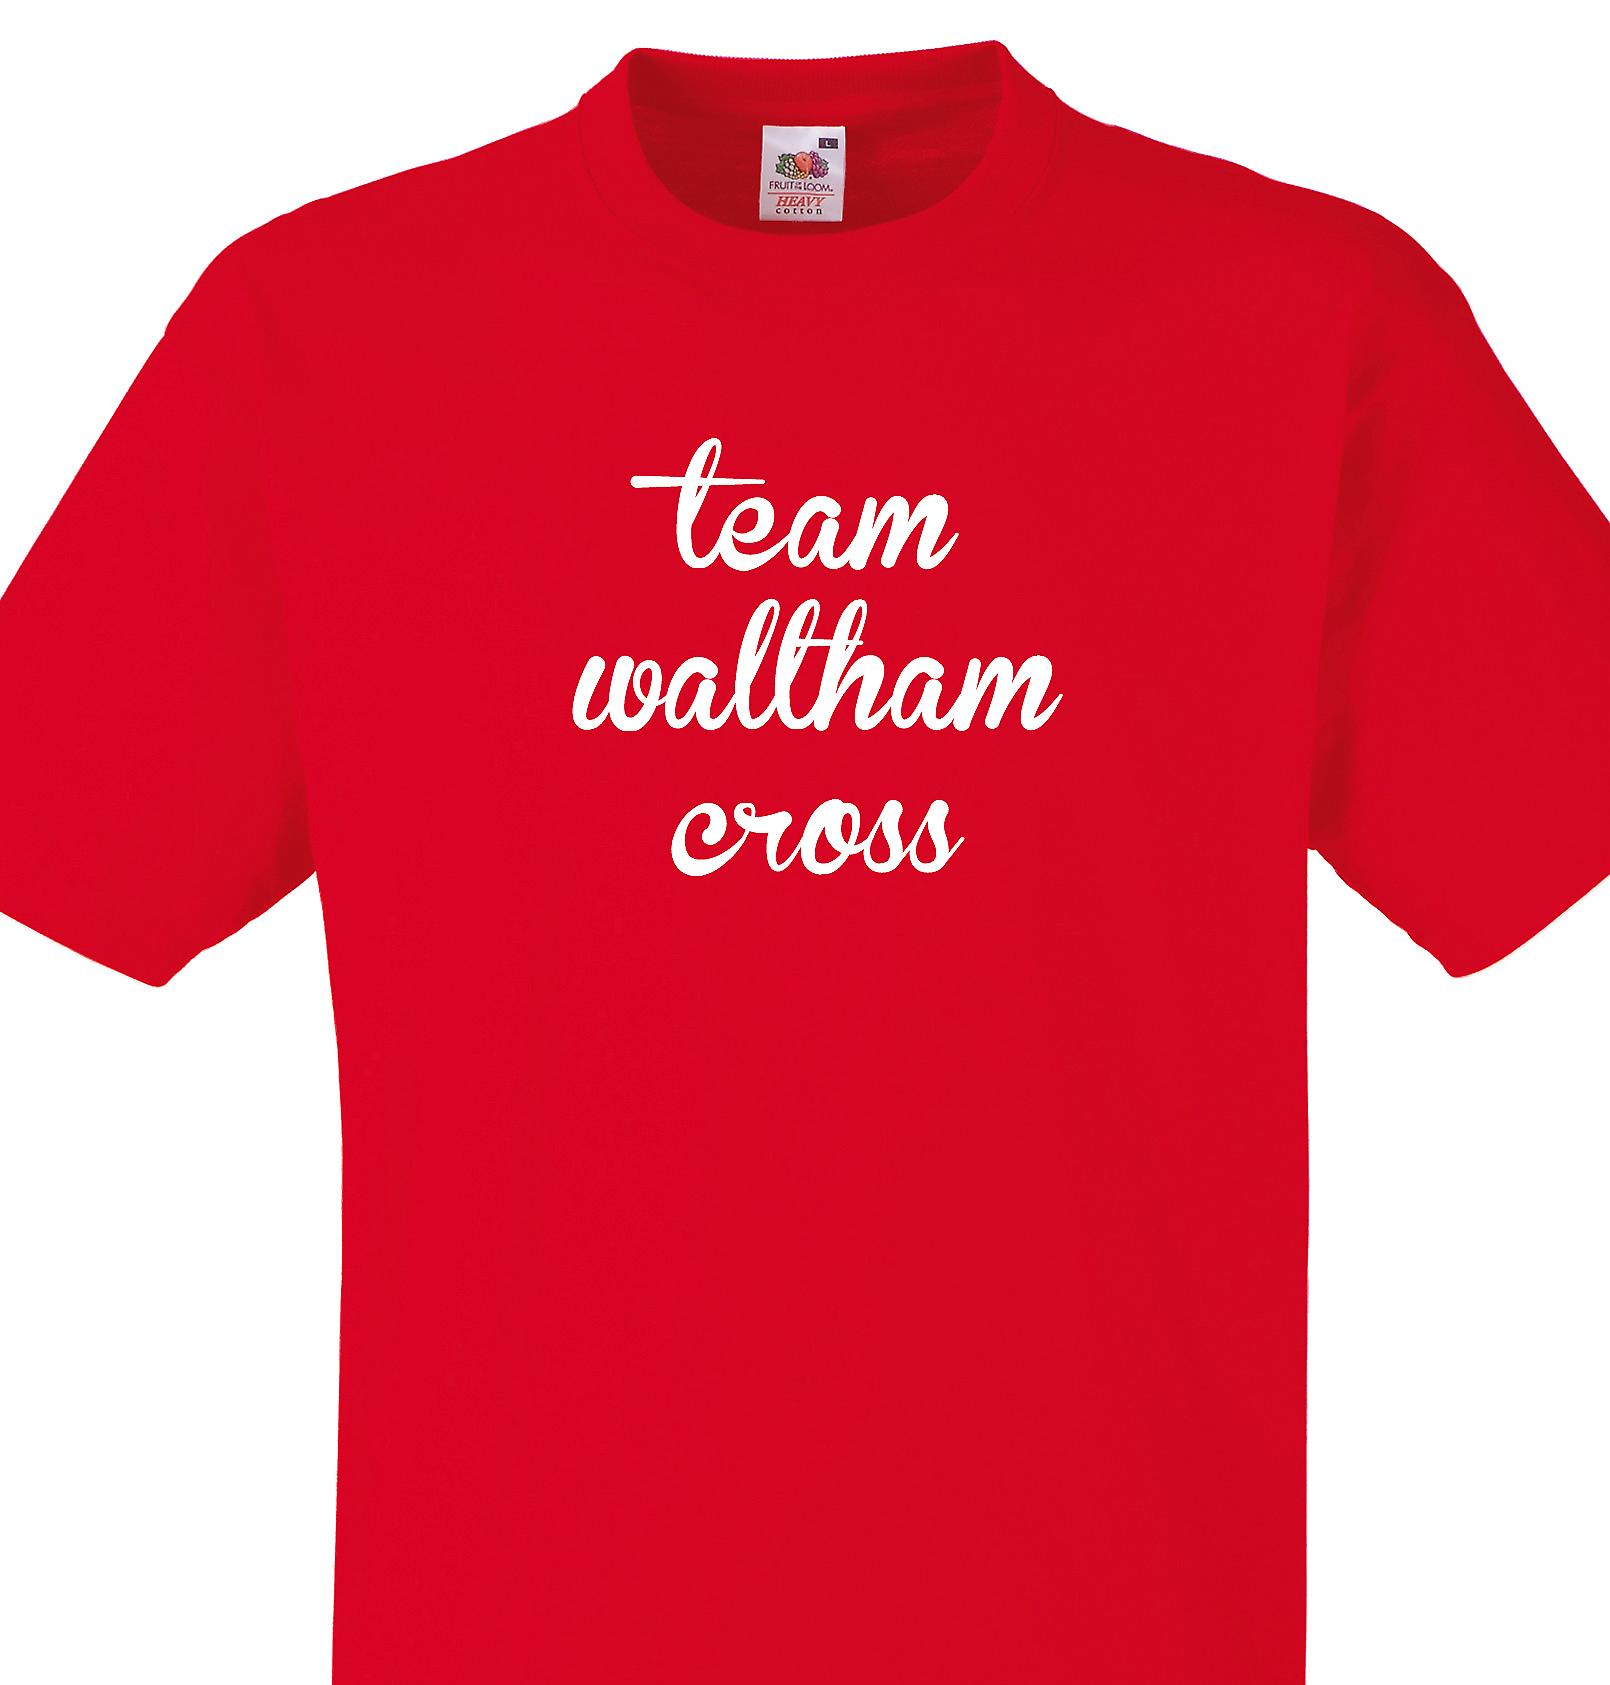 Team Waltham cross Red T shirt